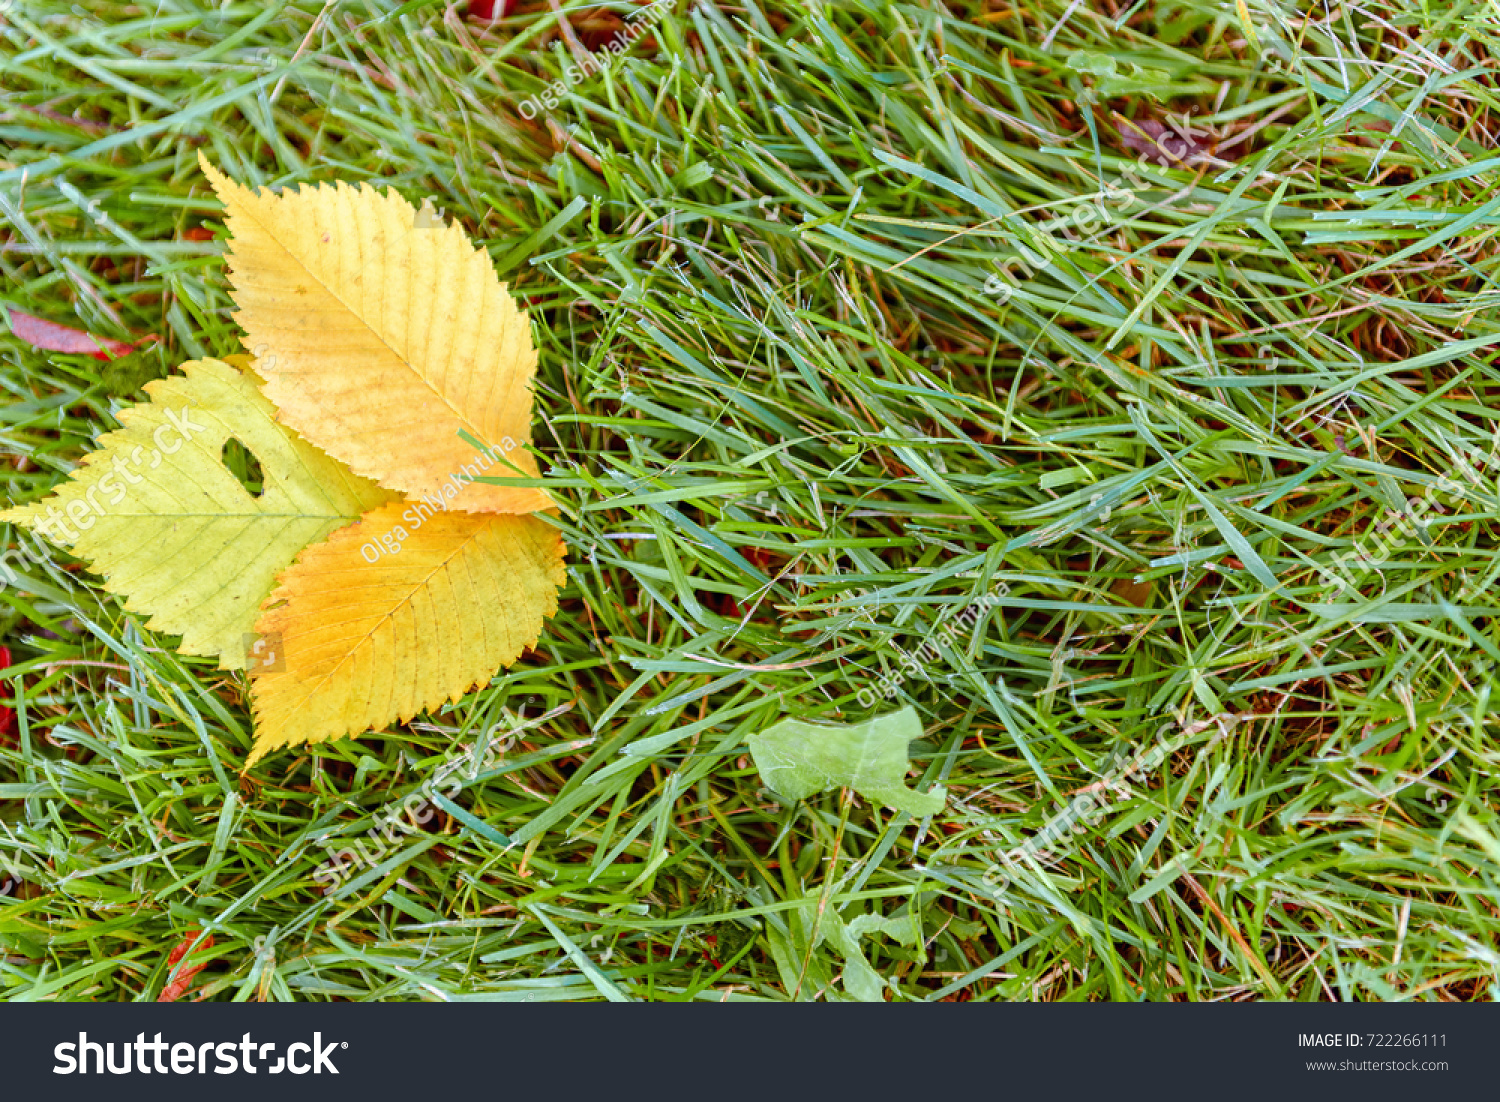 Green Tilia Linden Tree Leaves Natural Stock Photo (Royalty Free ...